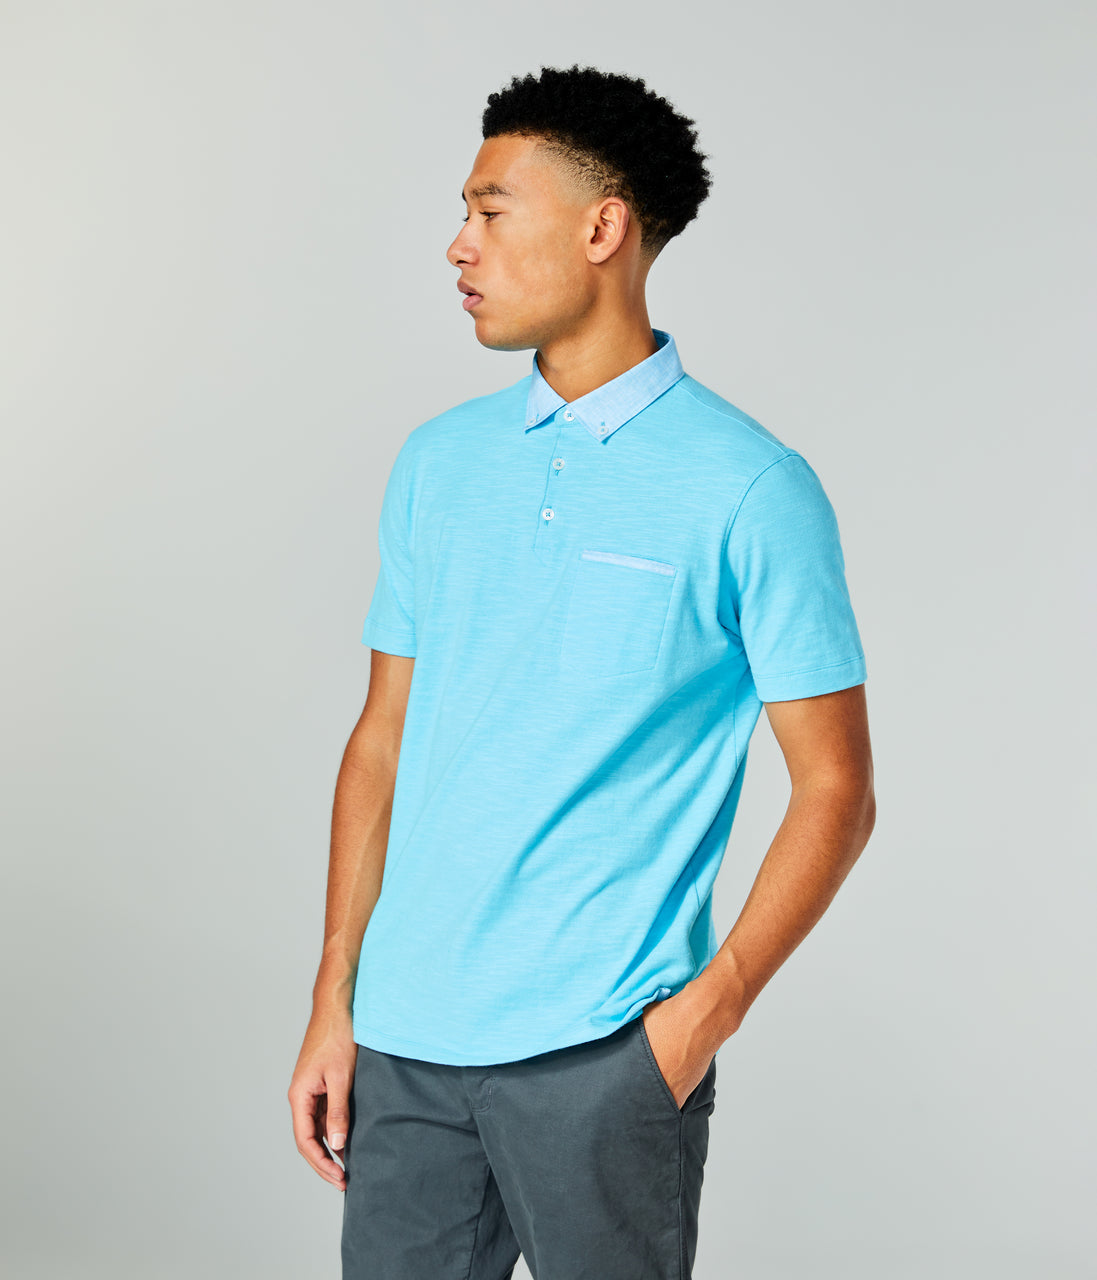 Soft Slub Jersey Polo - Blue Topaz - Good Man Brand - Soft Slub Jersey Polo - Blue Topaz